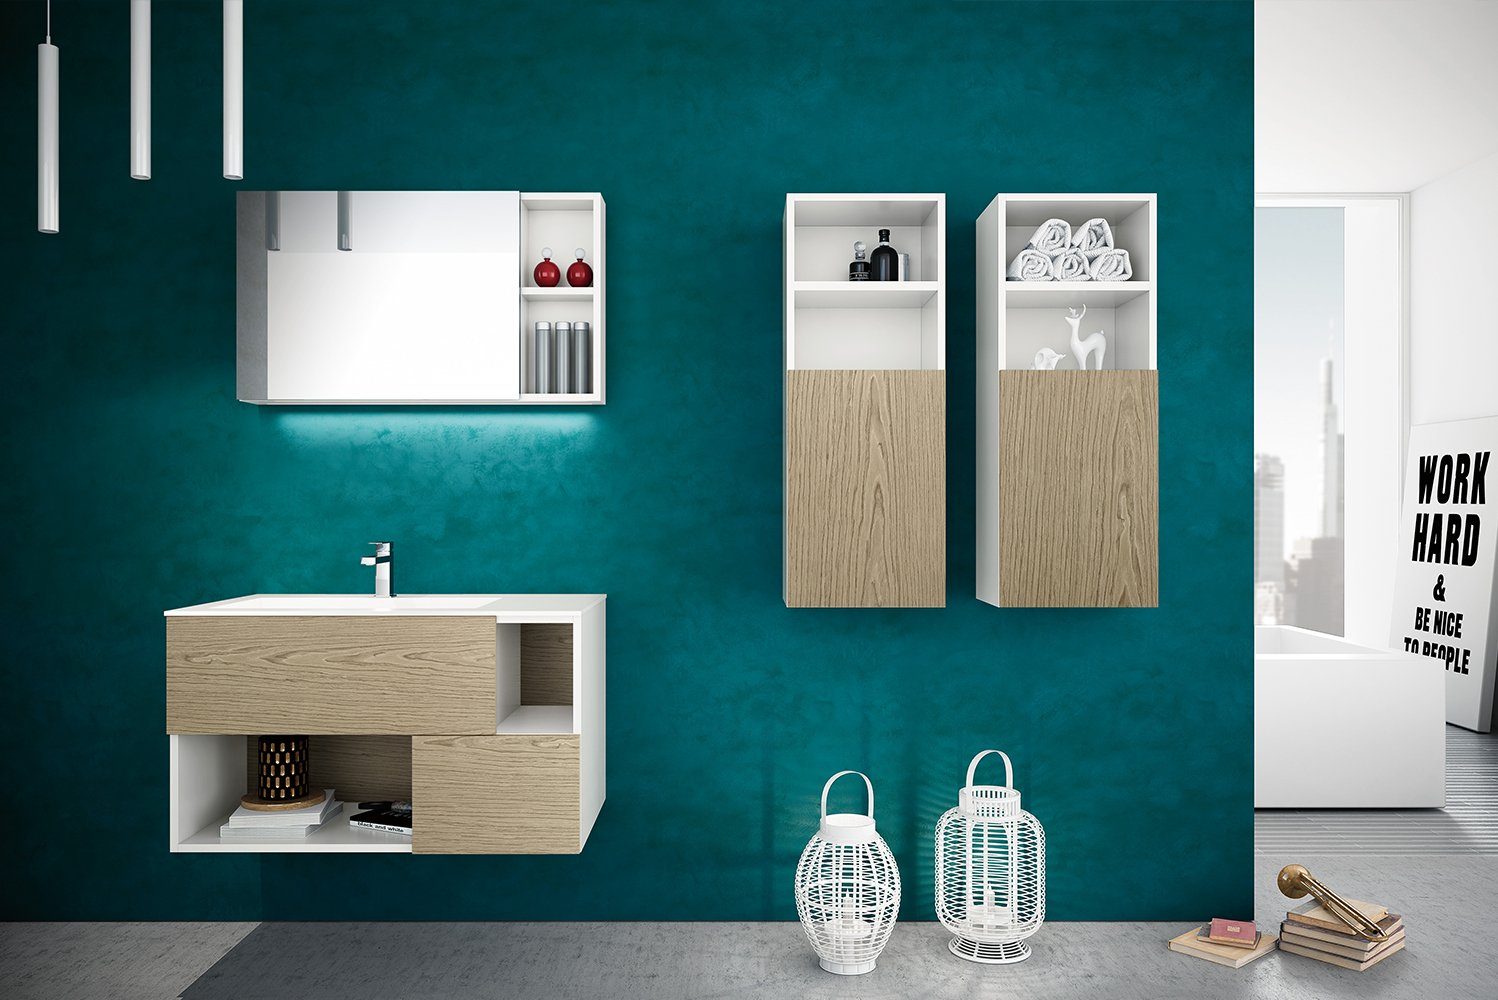 Best of open shelving: Open by Hastings Tile & Bath | Hotel Management